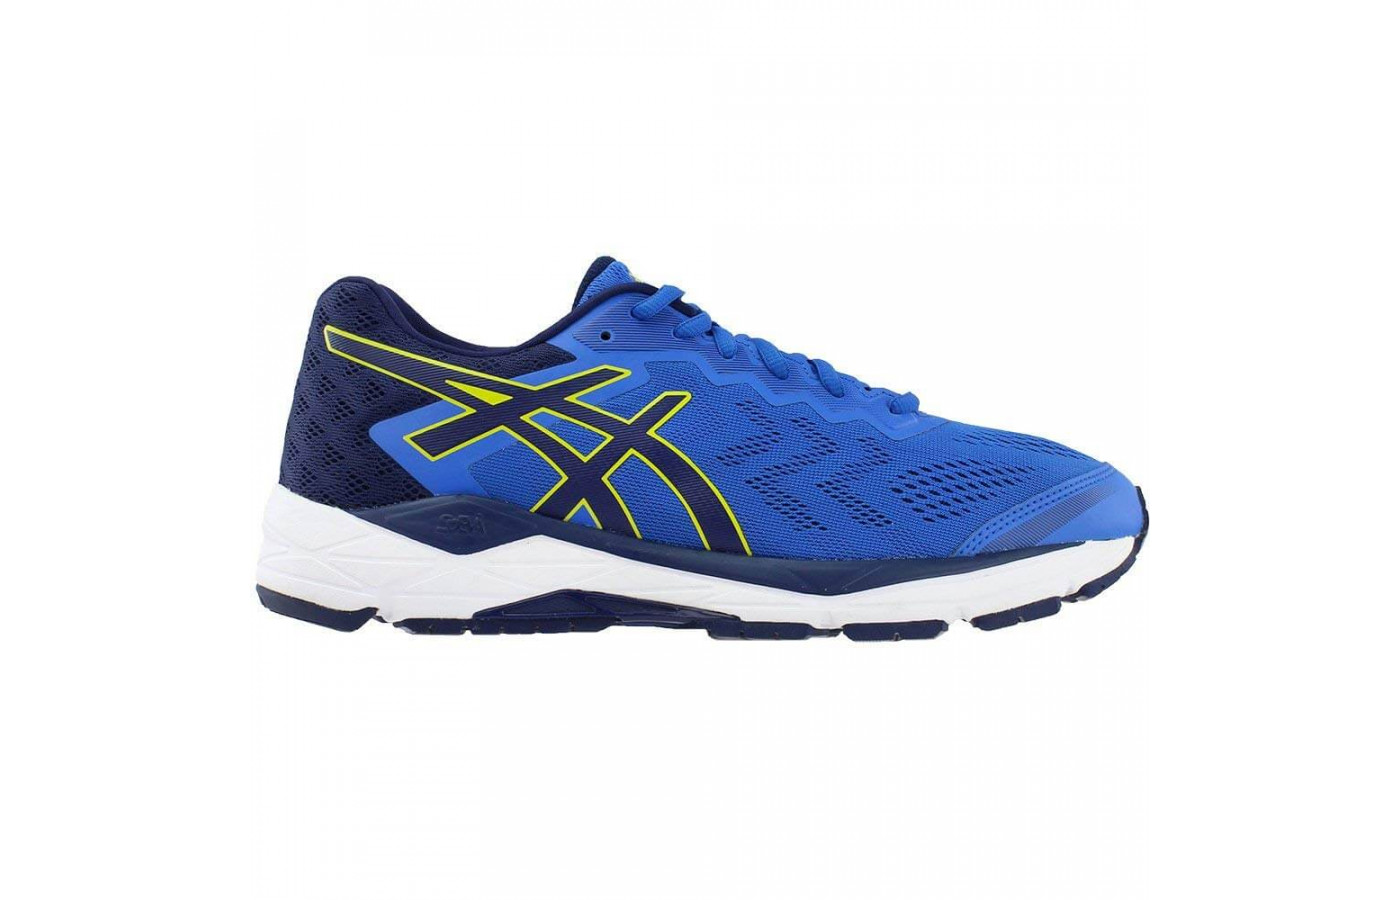 Rearfoot and forefoot Gel Technology adds to the Gel Fortitude 8's level of comfort.